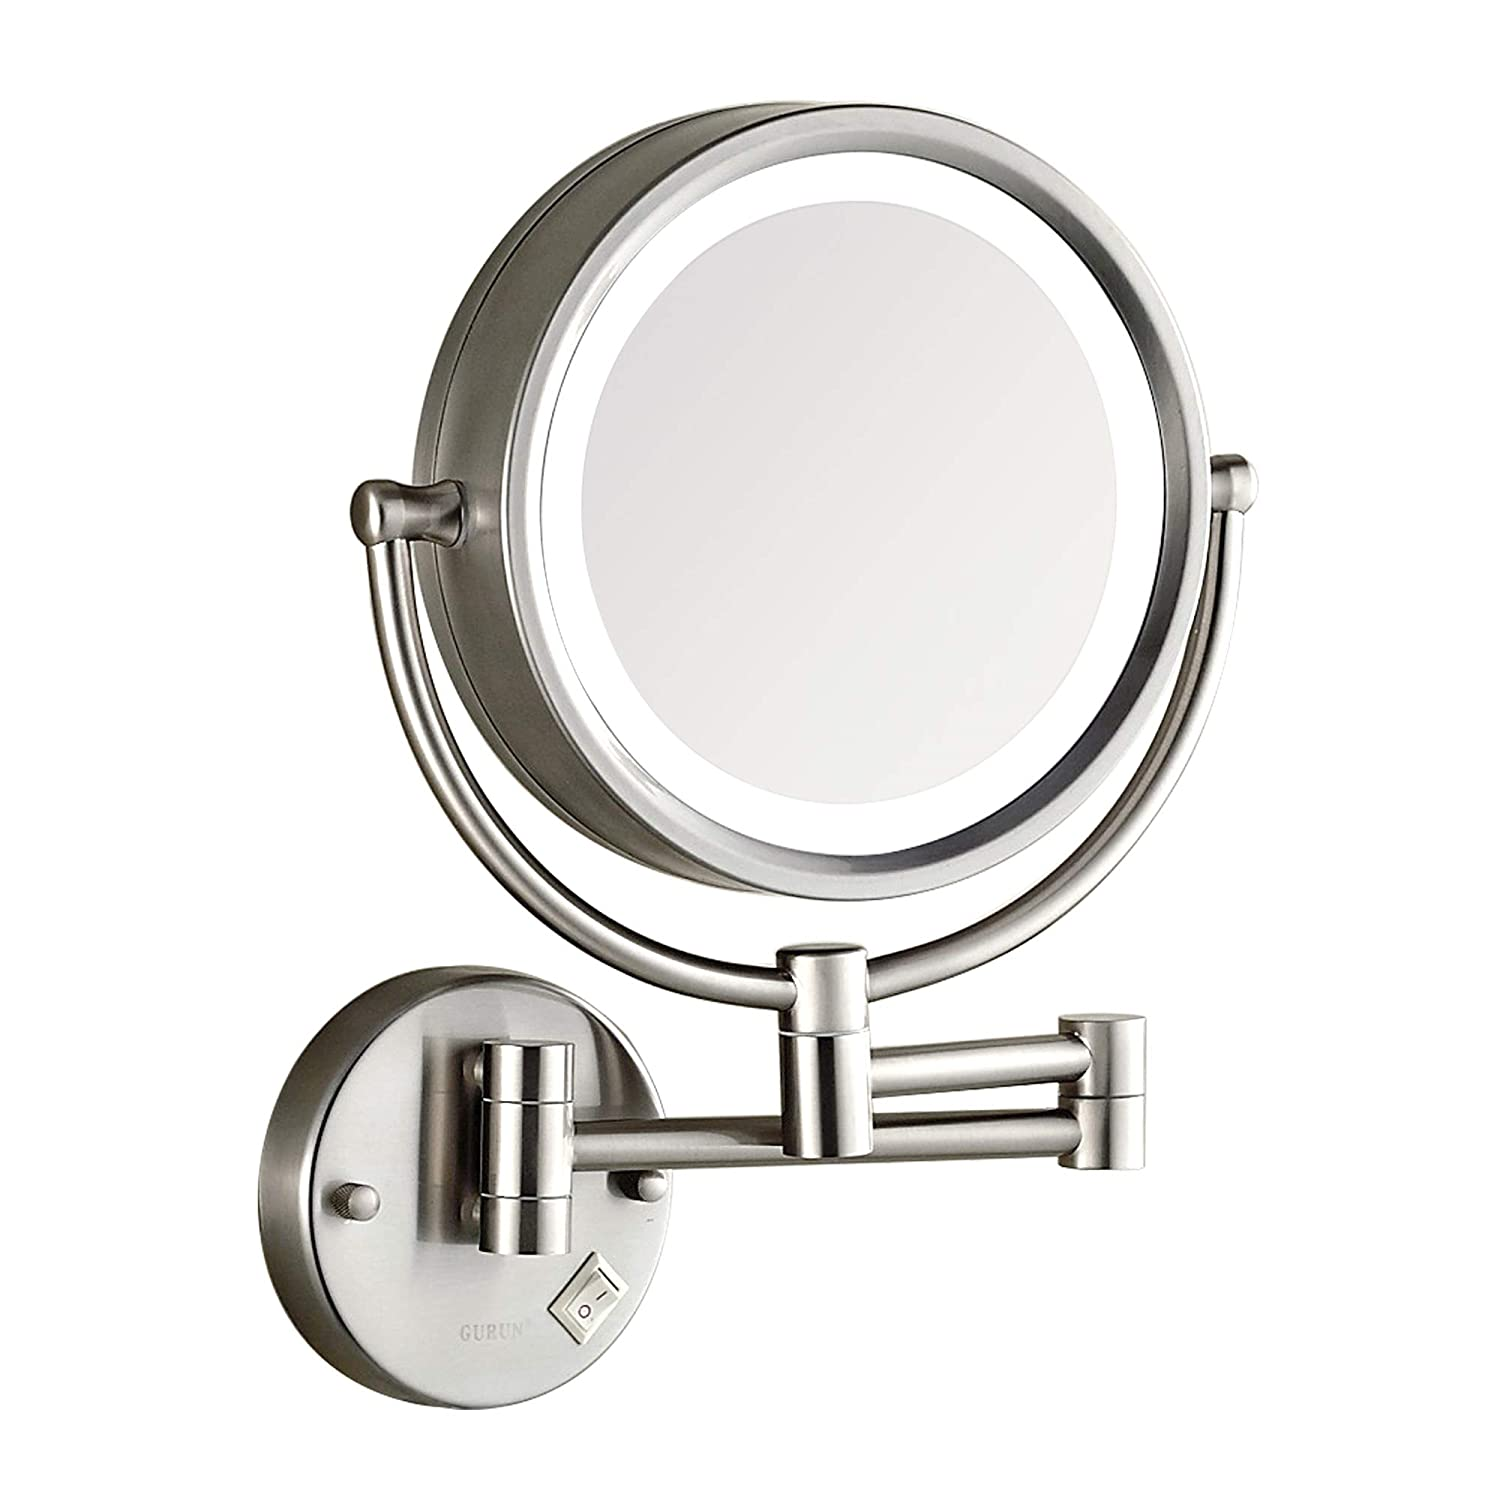 DOWRY Makeup Mirror Wall Mount Lighted with 10X Magnification,8Inch Plug Powered, Brush Nickel Bathroom Mirror 09N